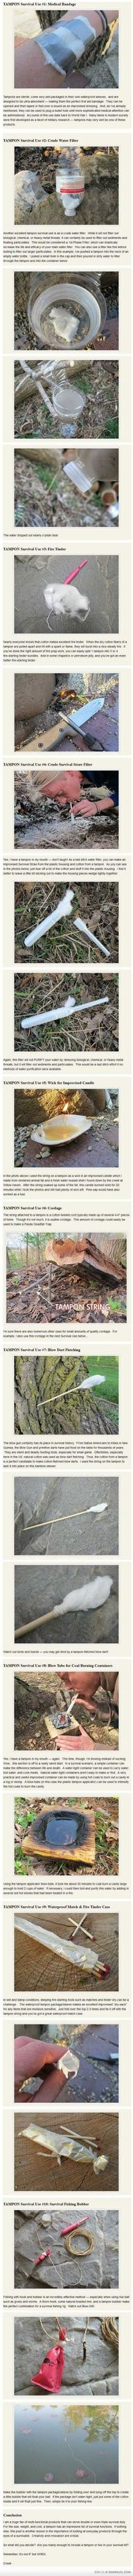 Survival Uses Of A Tampon